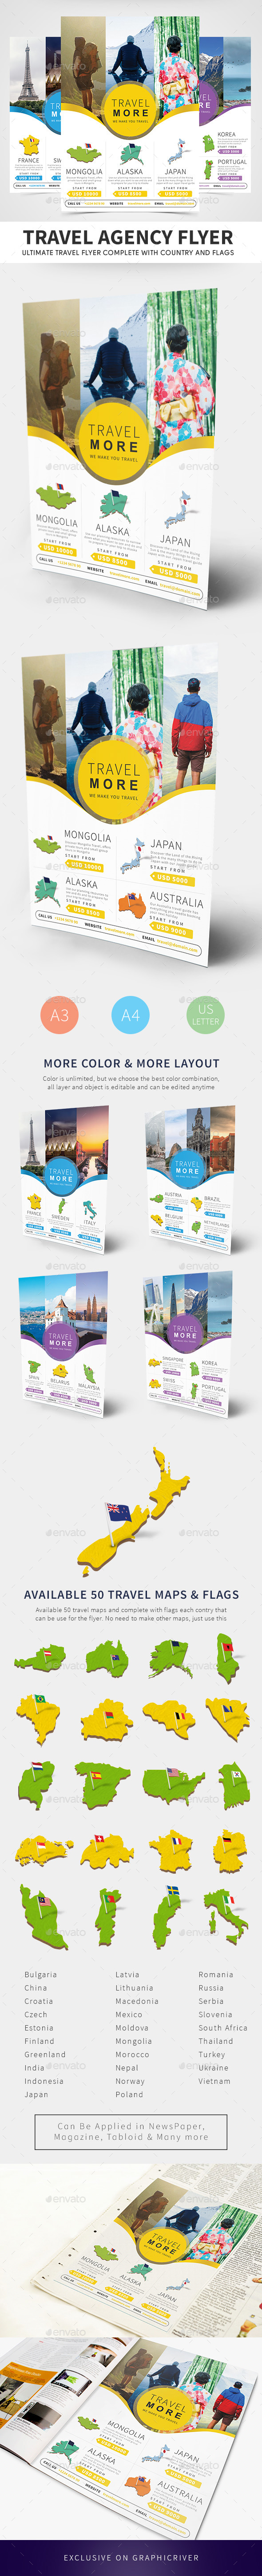 Travel Agency Flyer Templates - Holidays Events